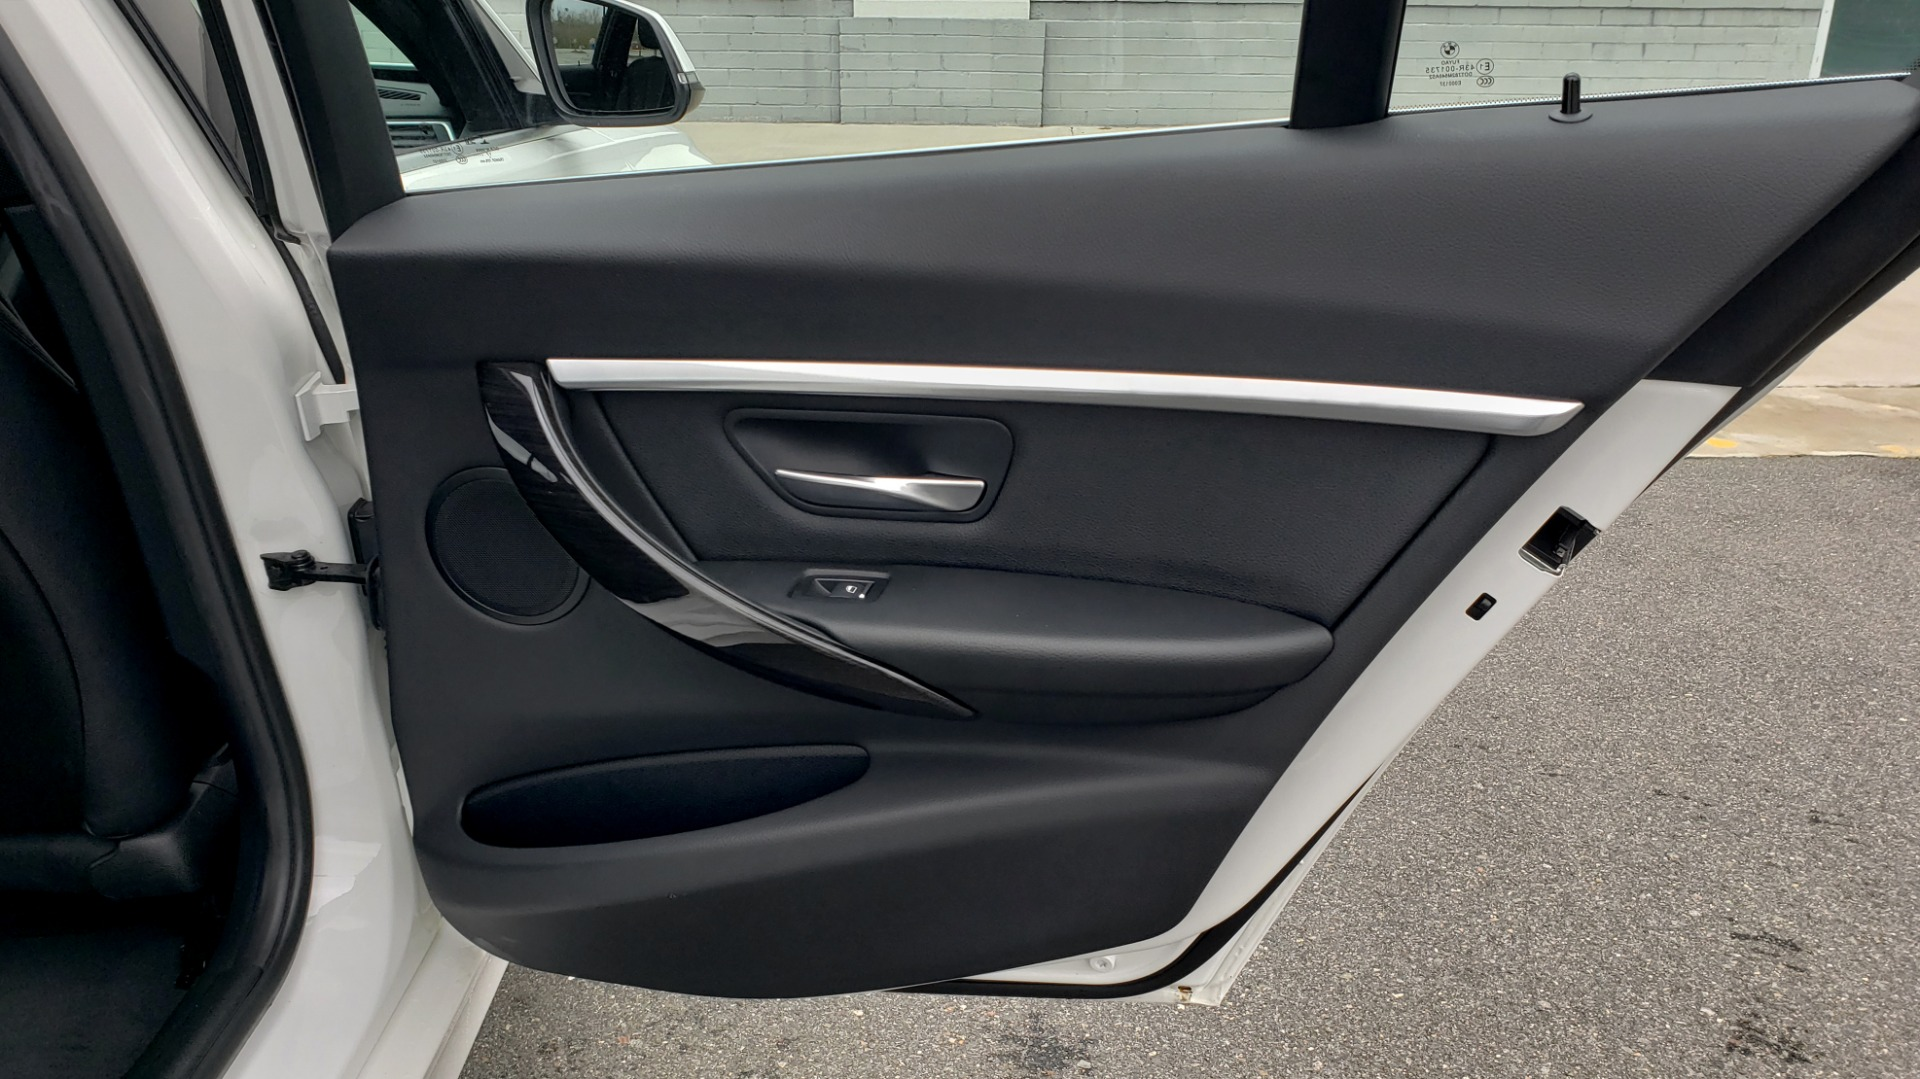 Used 2018 BMW 3 SERIES 330I XDRIVE / CONV PKG / SUNROOF / HTD STS / REARVIEW for sale $24,795 at Formula Imports in Charlotte NC 28227 71